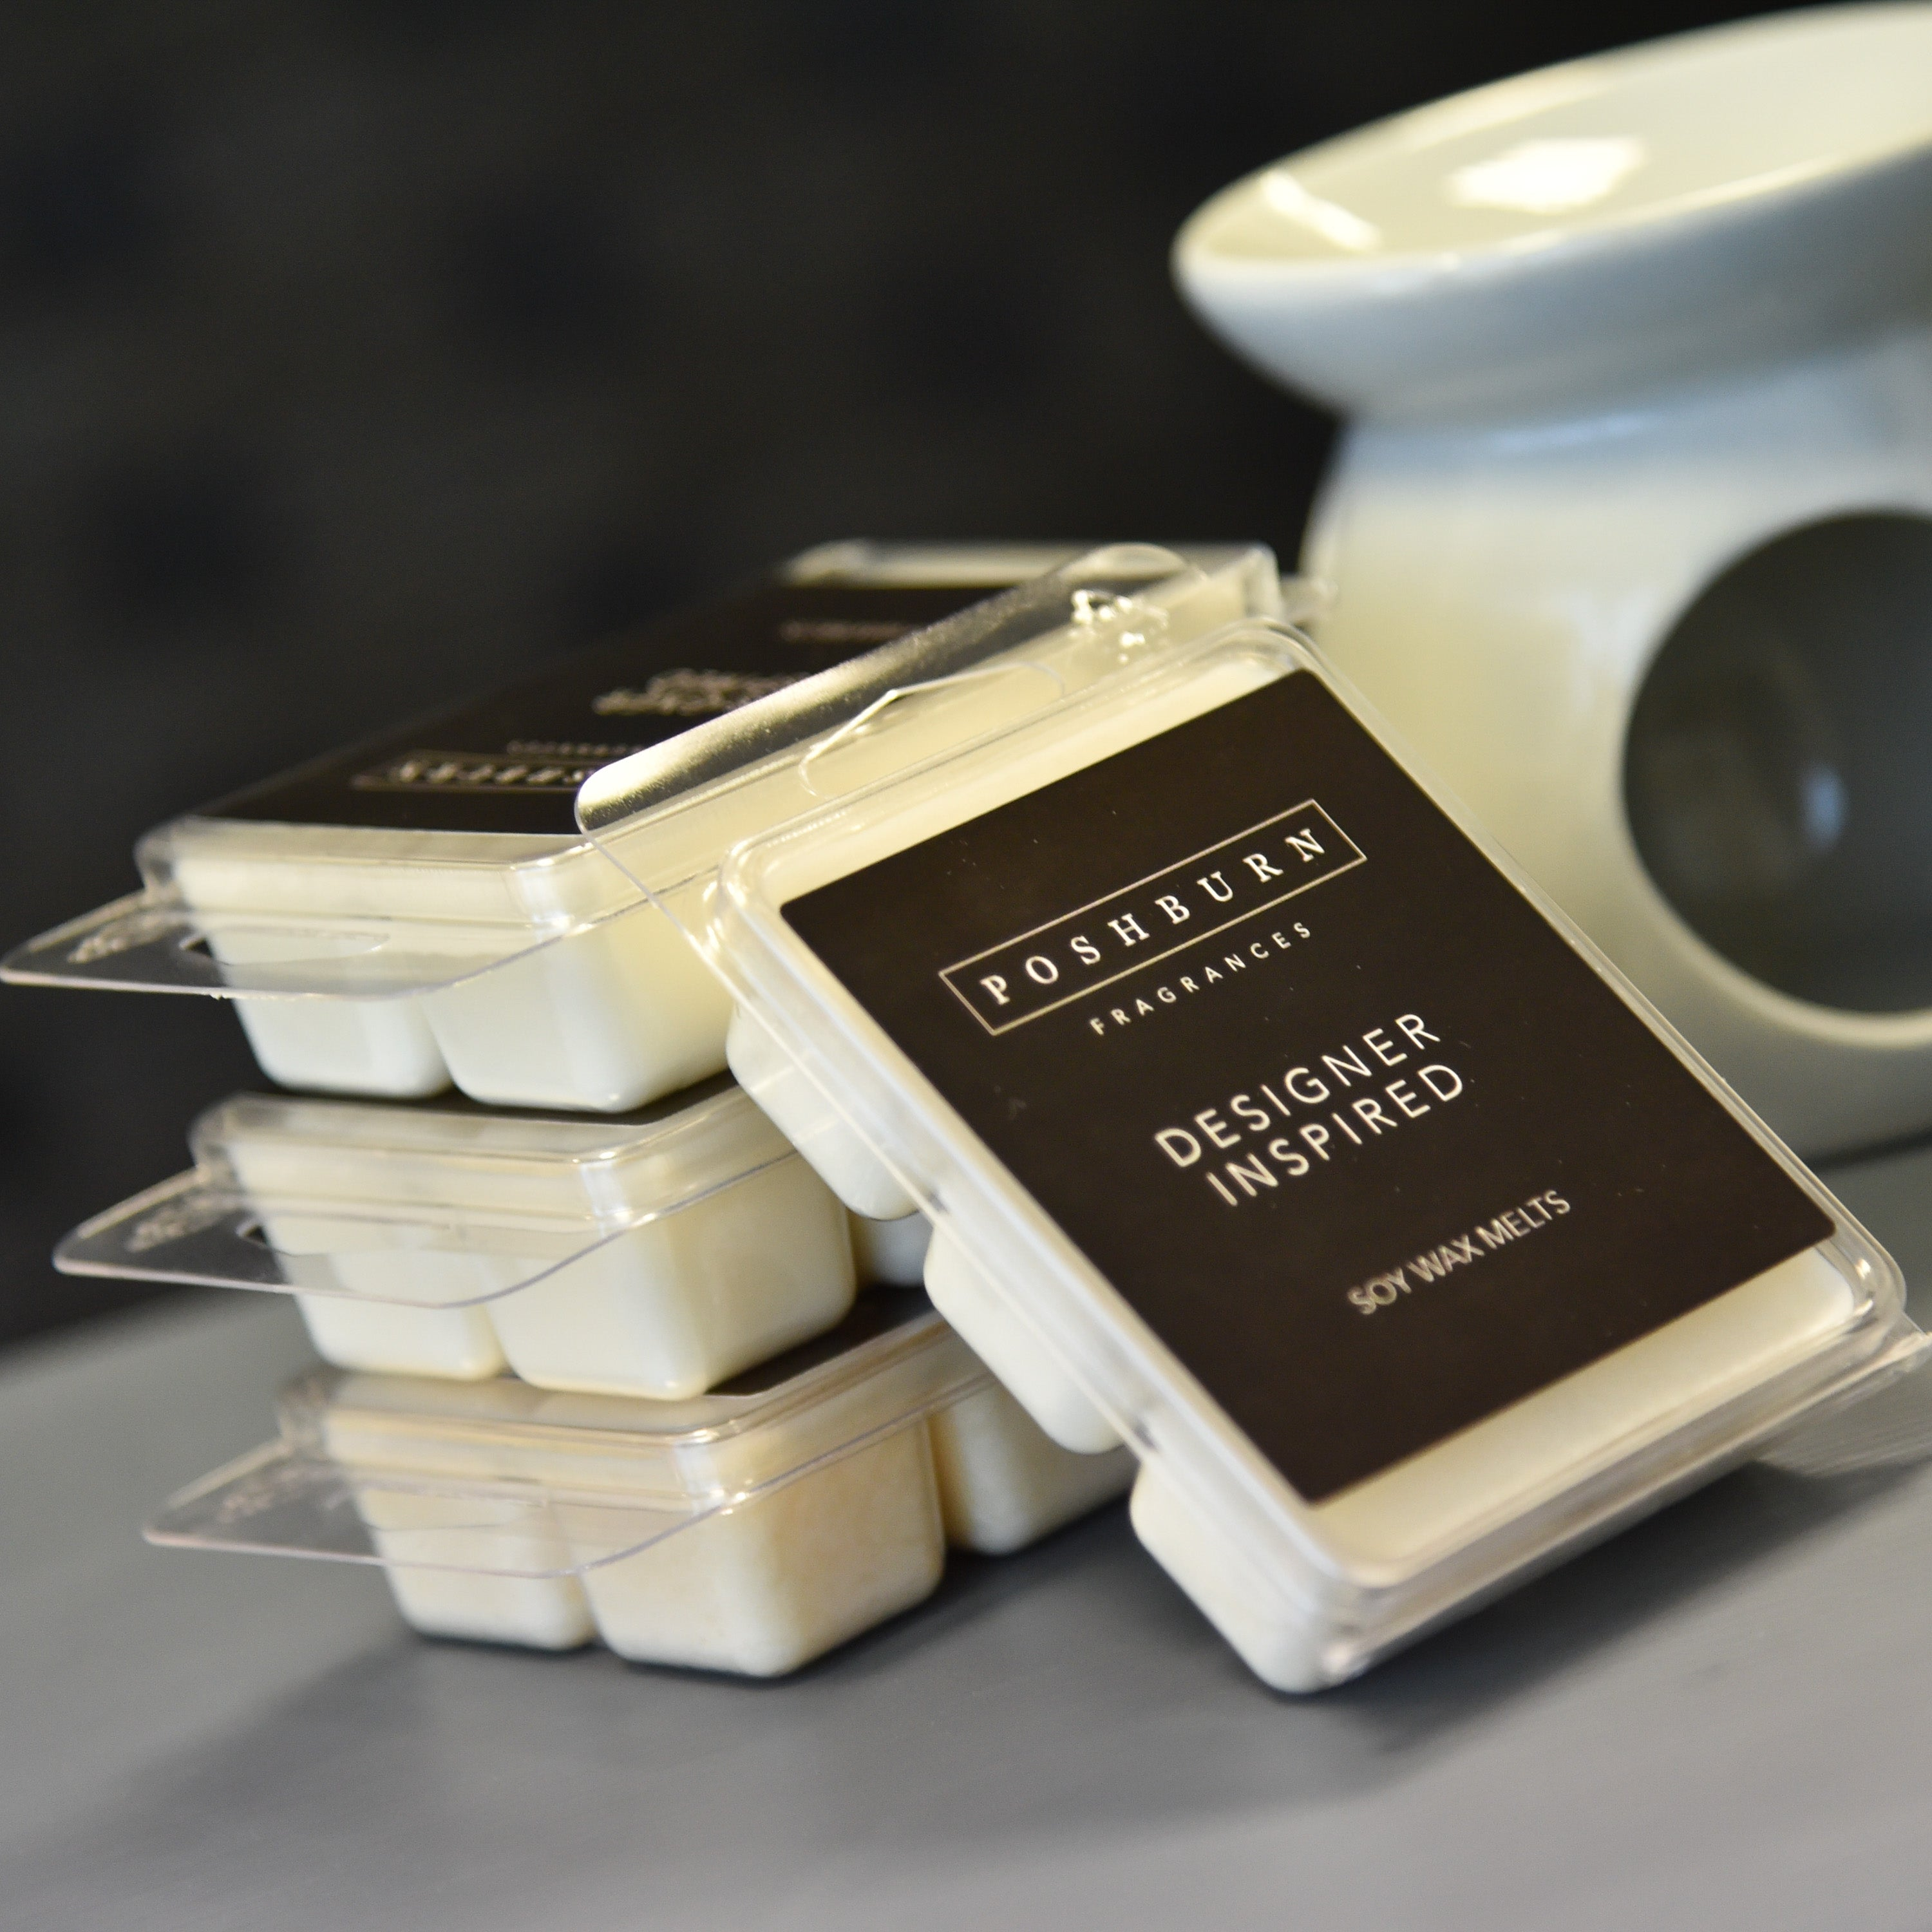 Rouge 540 Soy Wax Melts